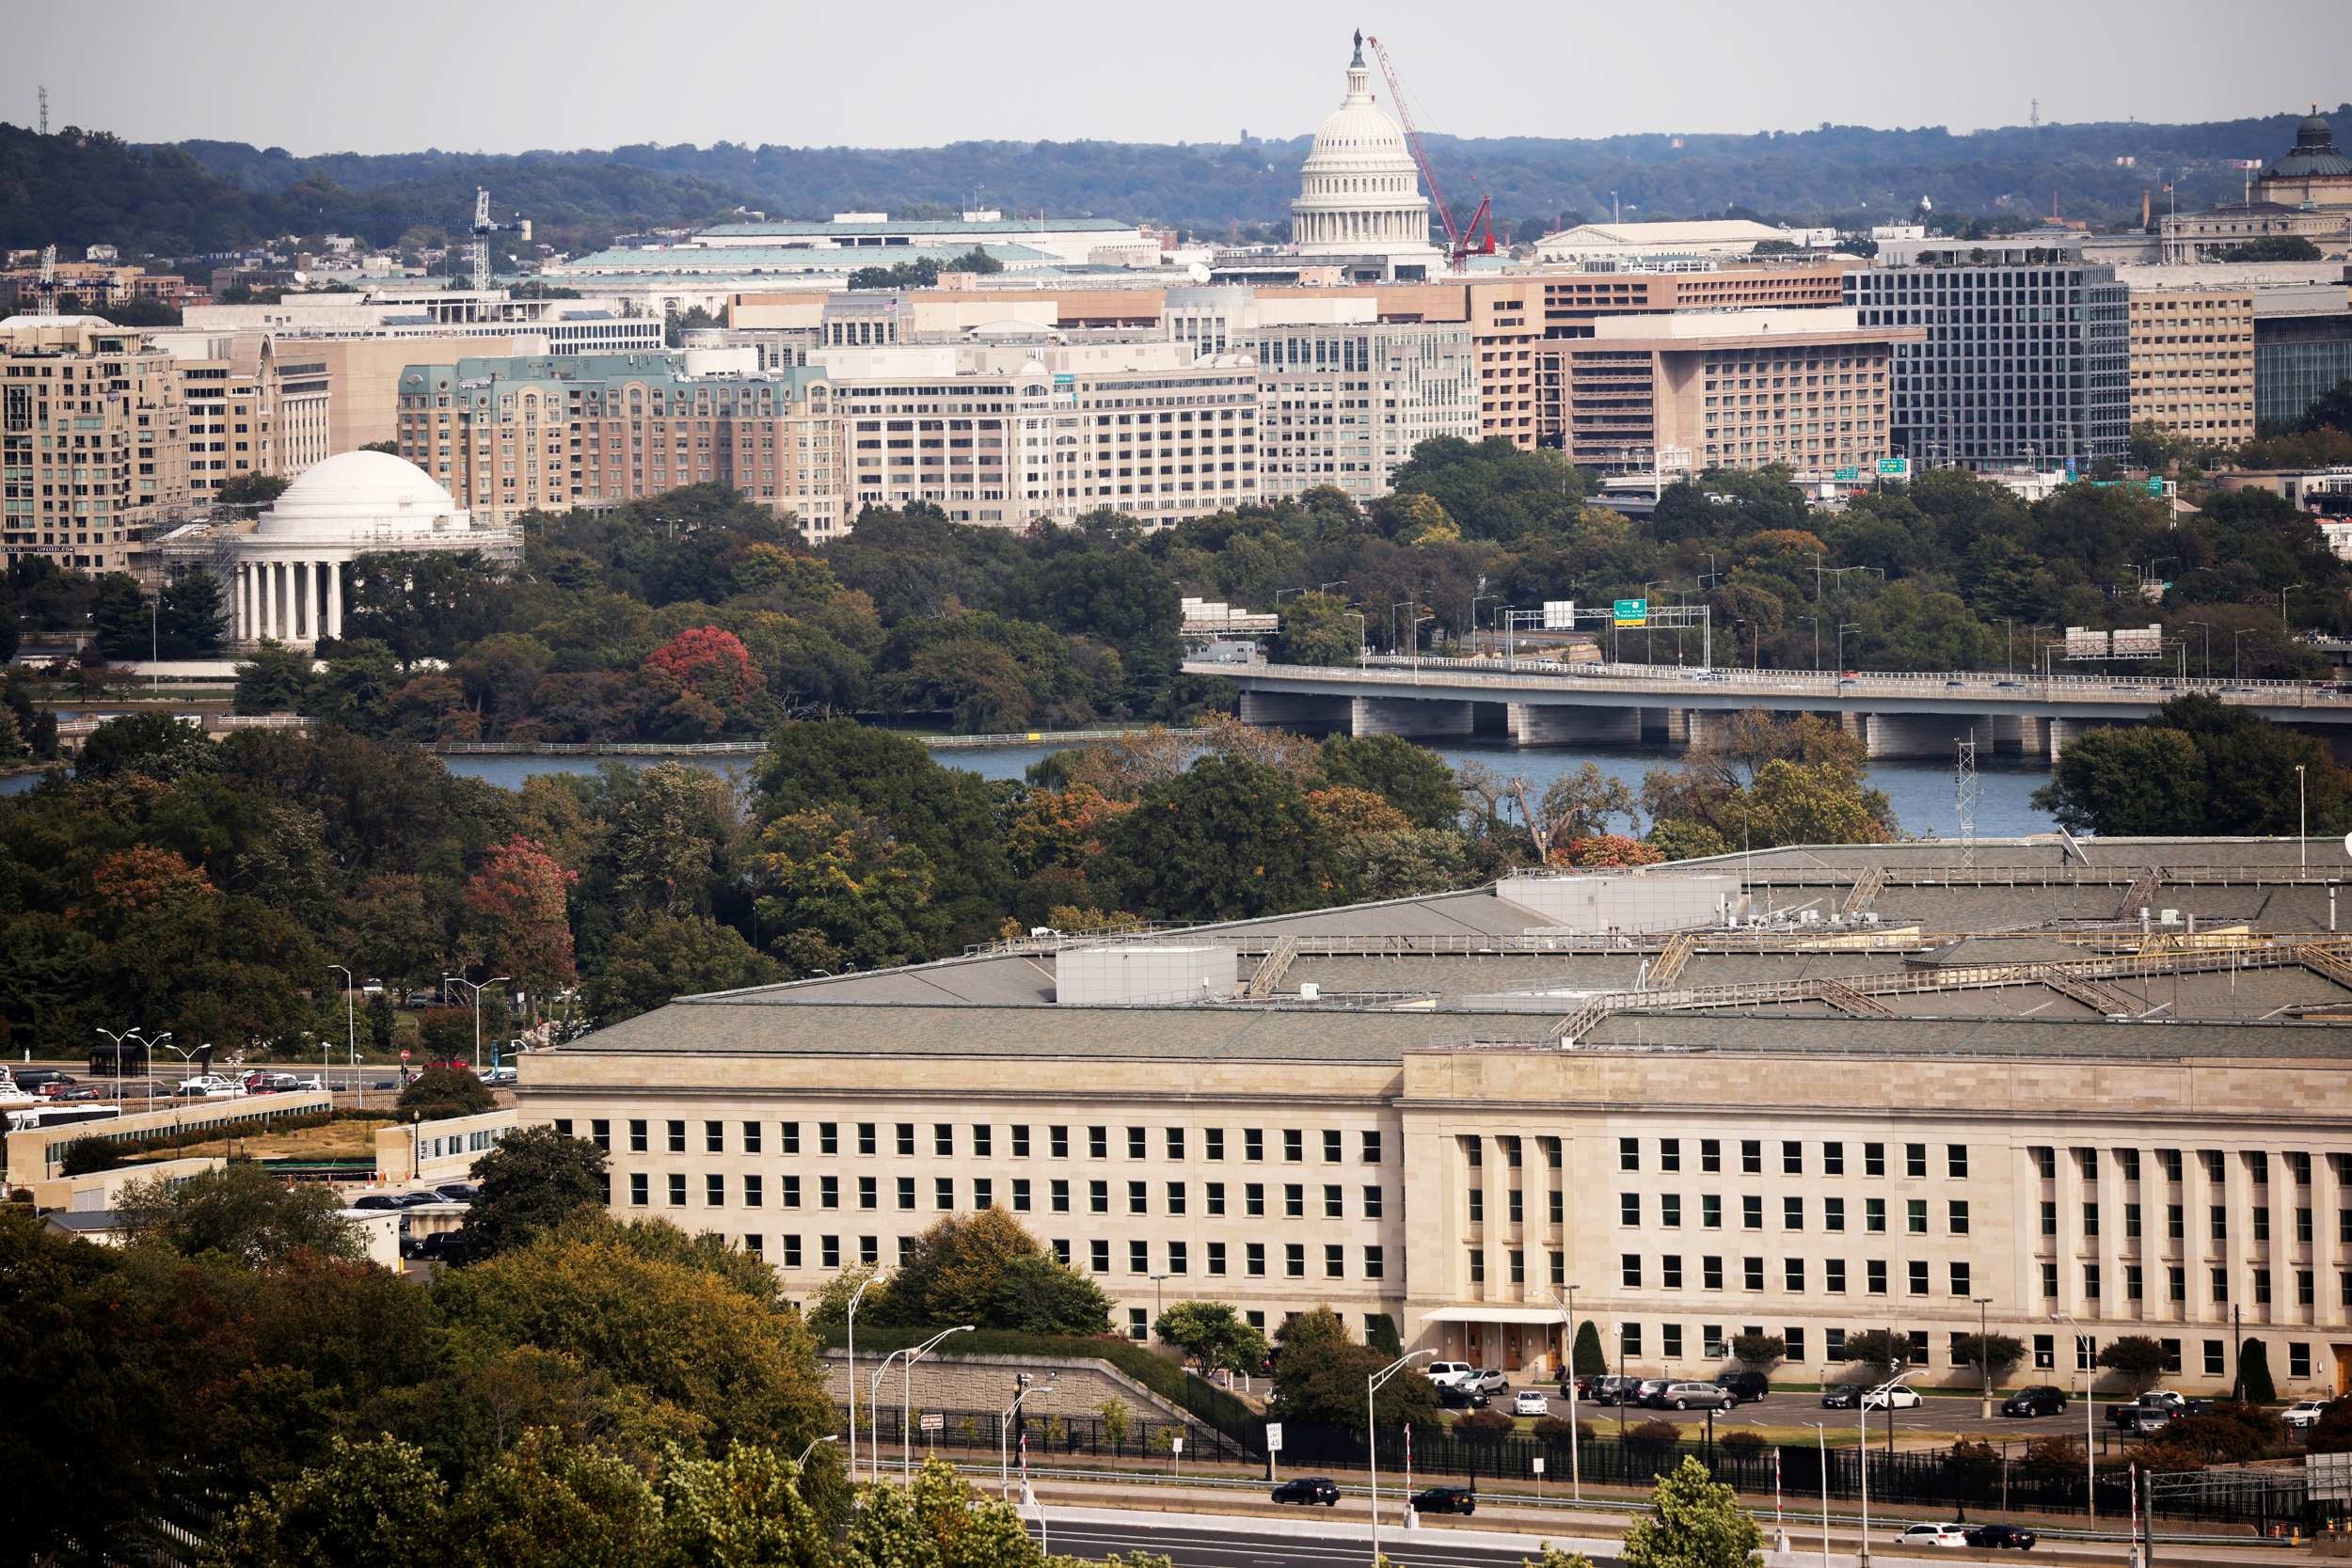 Pentagon on lockdown after shots fired near Metro station